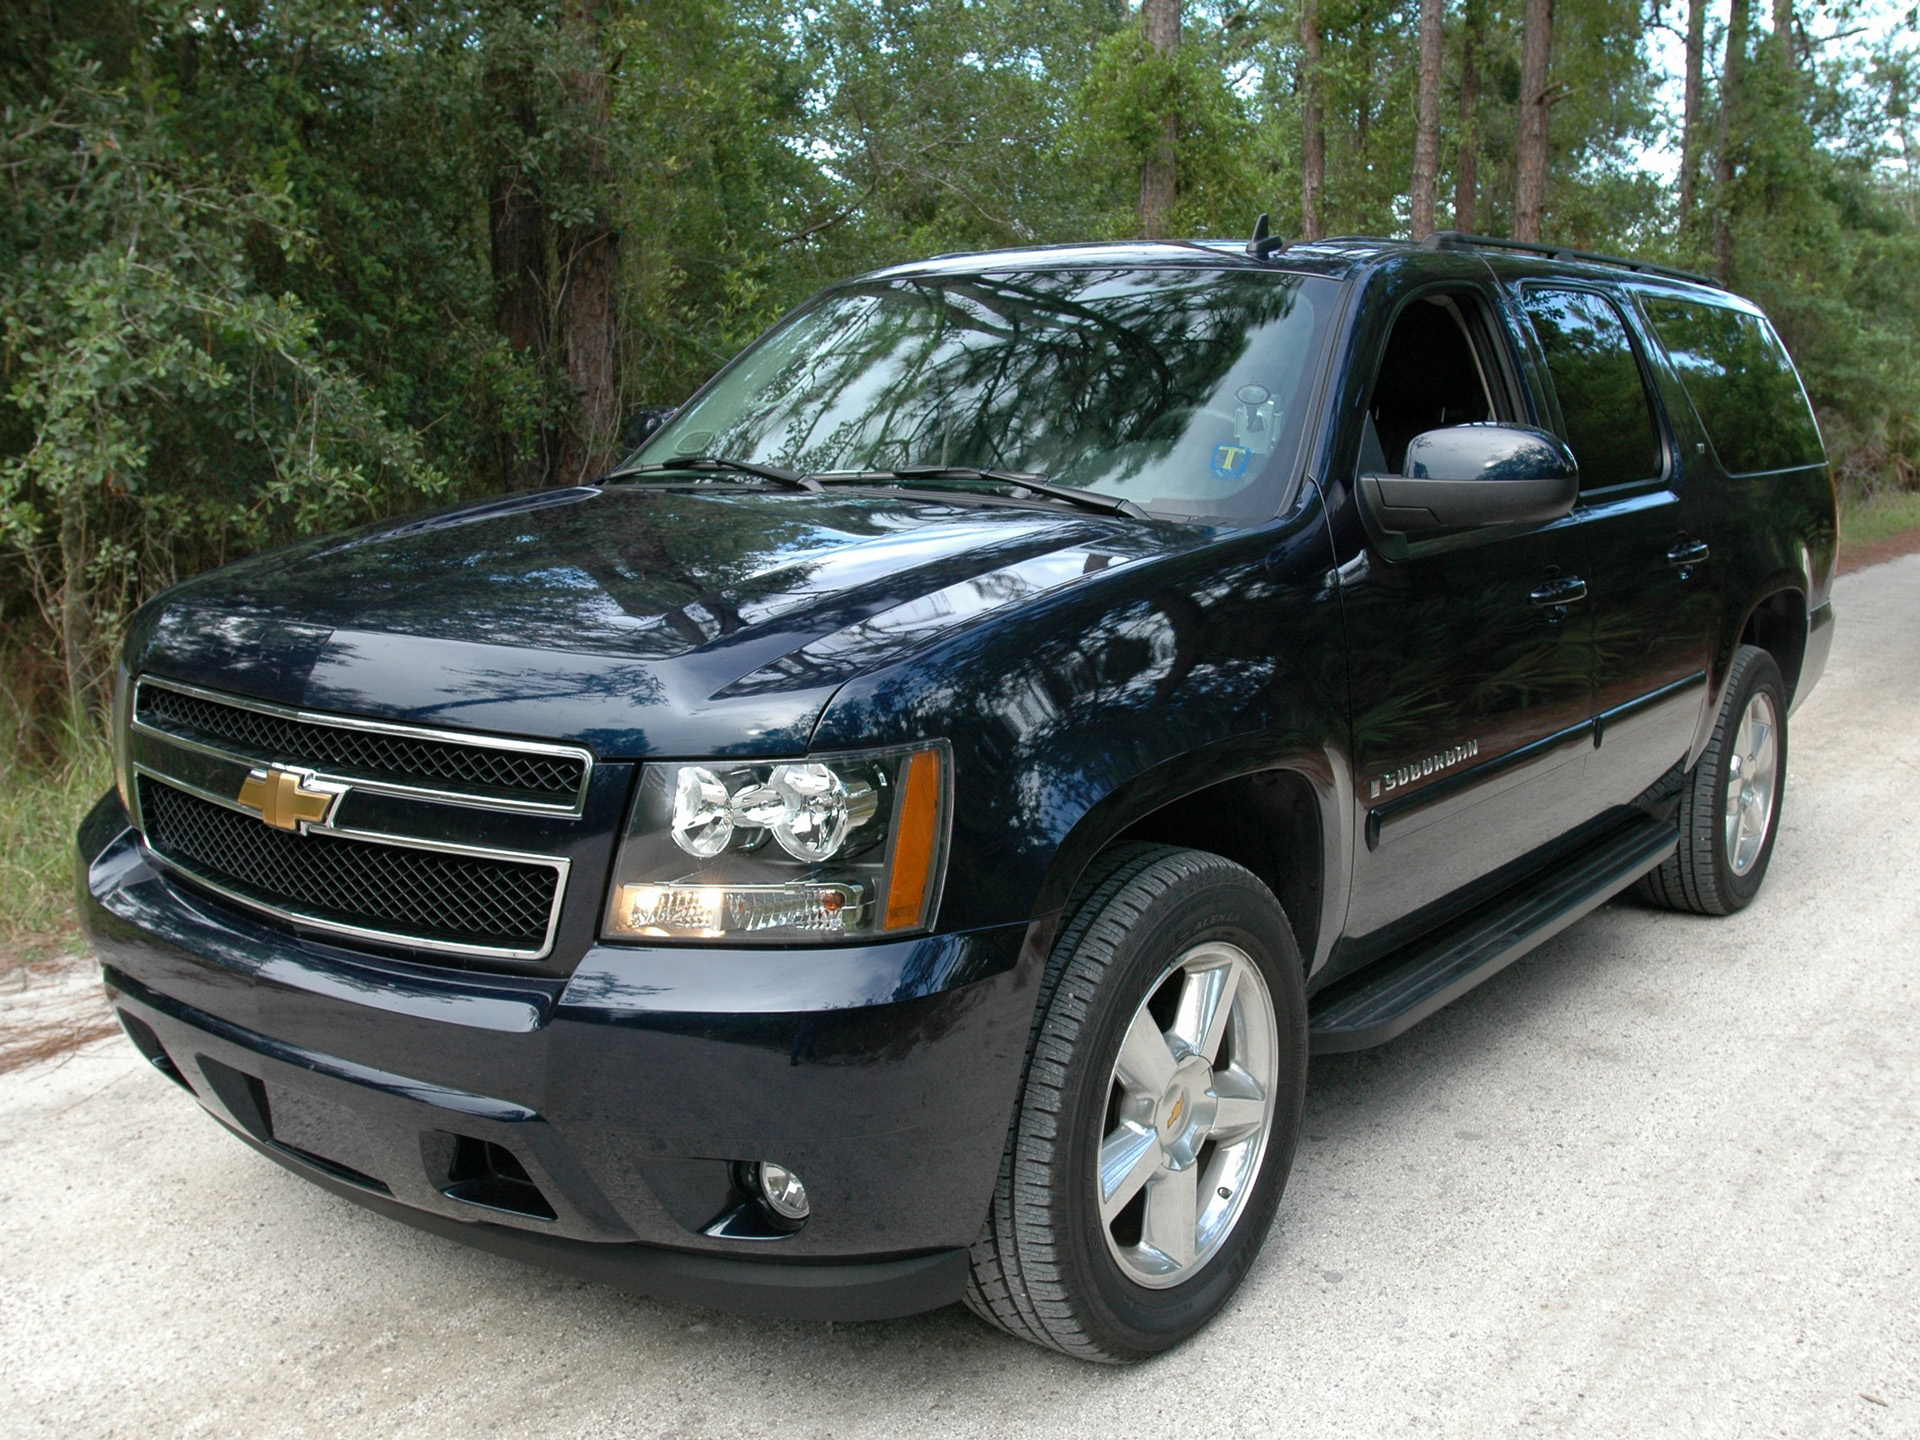 chevrolet suburban review and photos. Black Bedroom Furniture Sets. Home Design Ideas